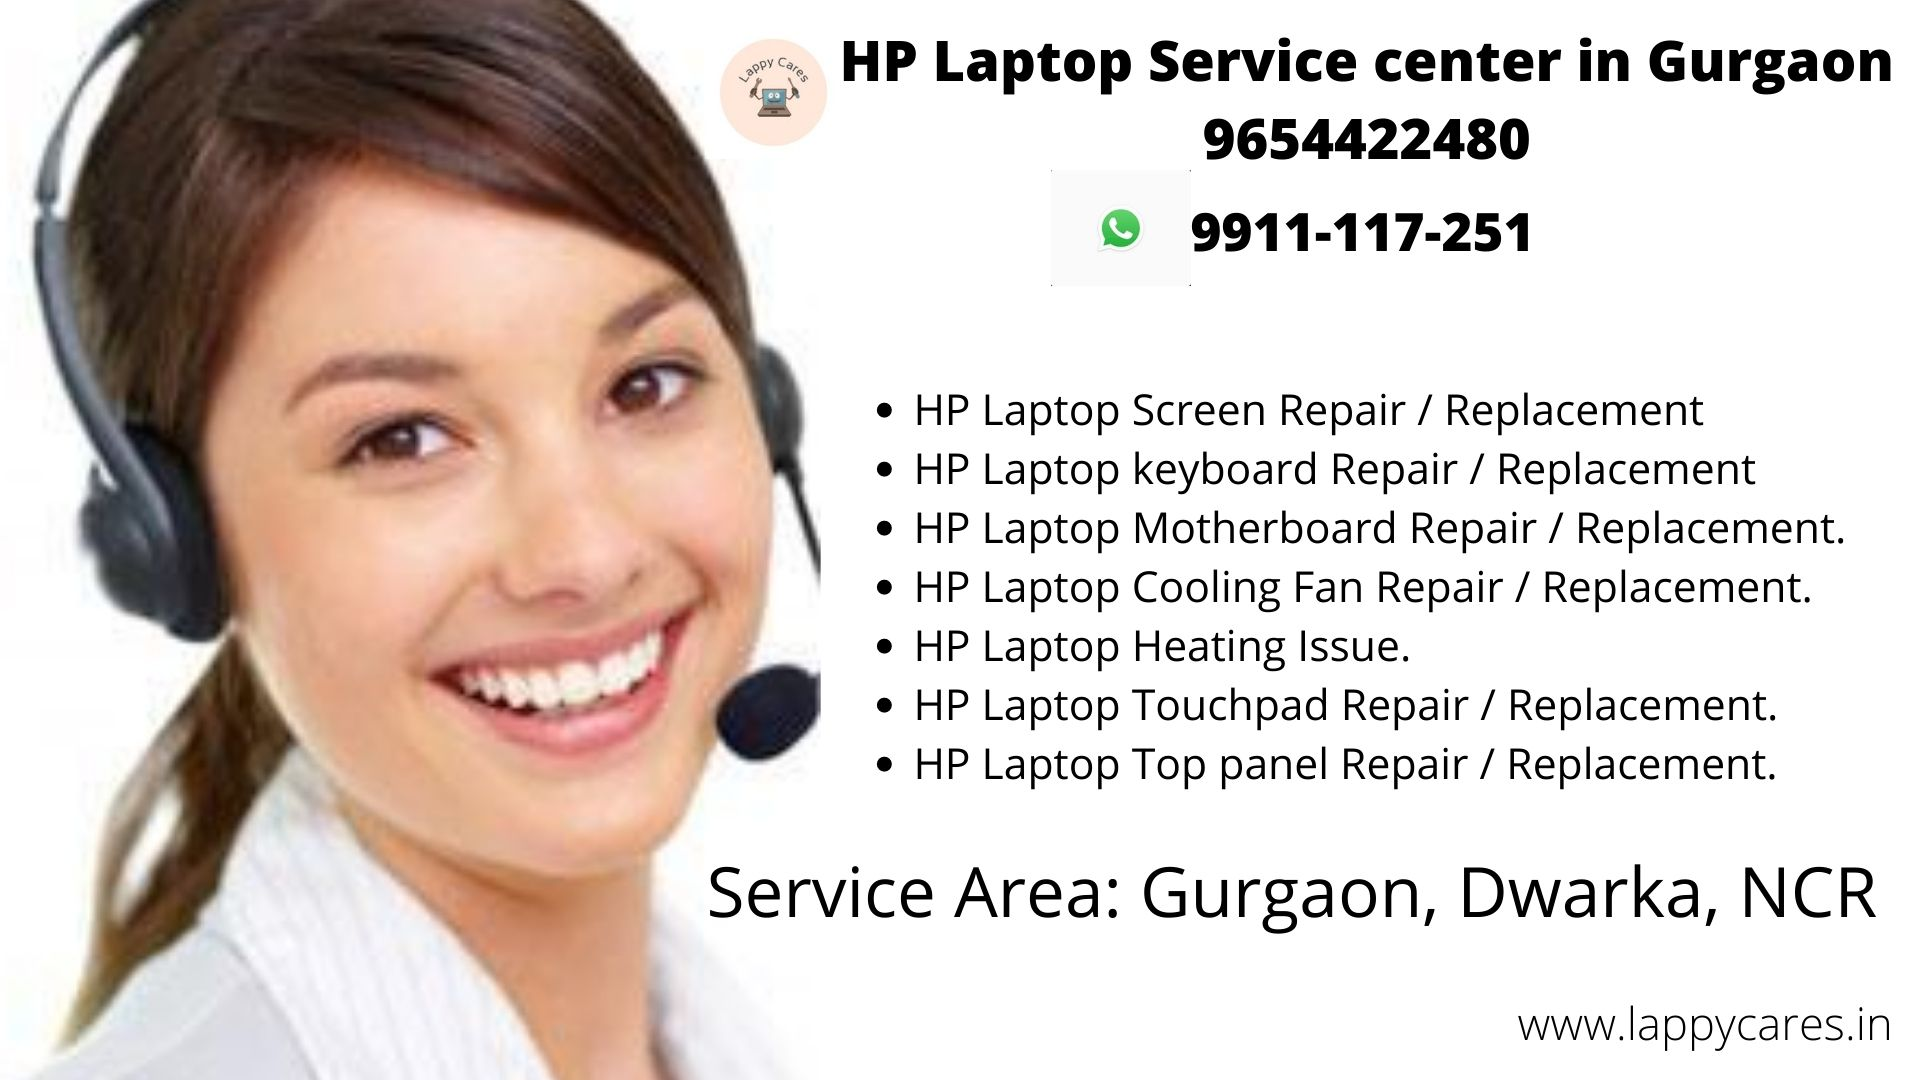 HP LAPTOP SERVICE CENTER GURGAON 9654422480